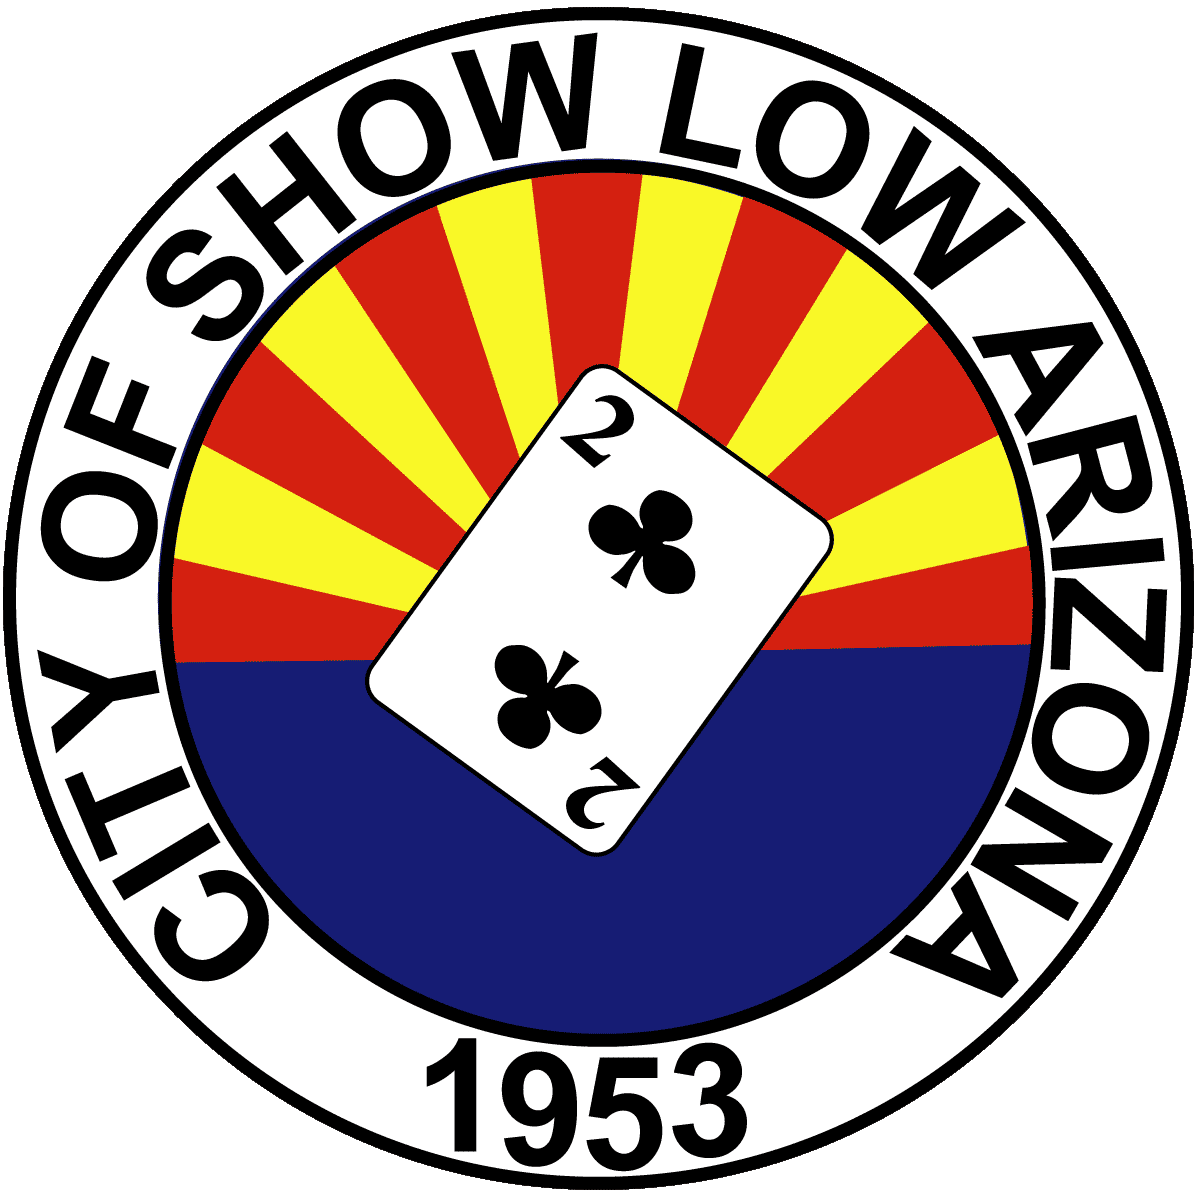 City of Show Low logo